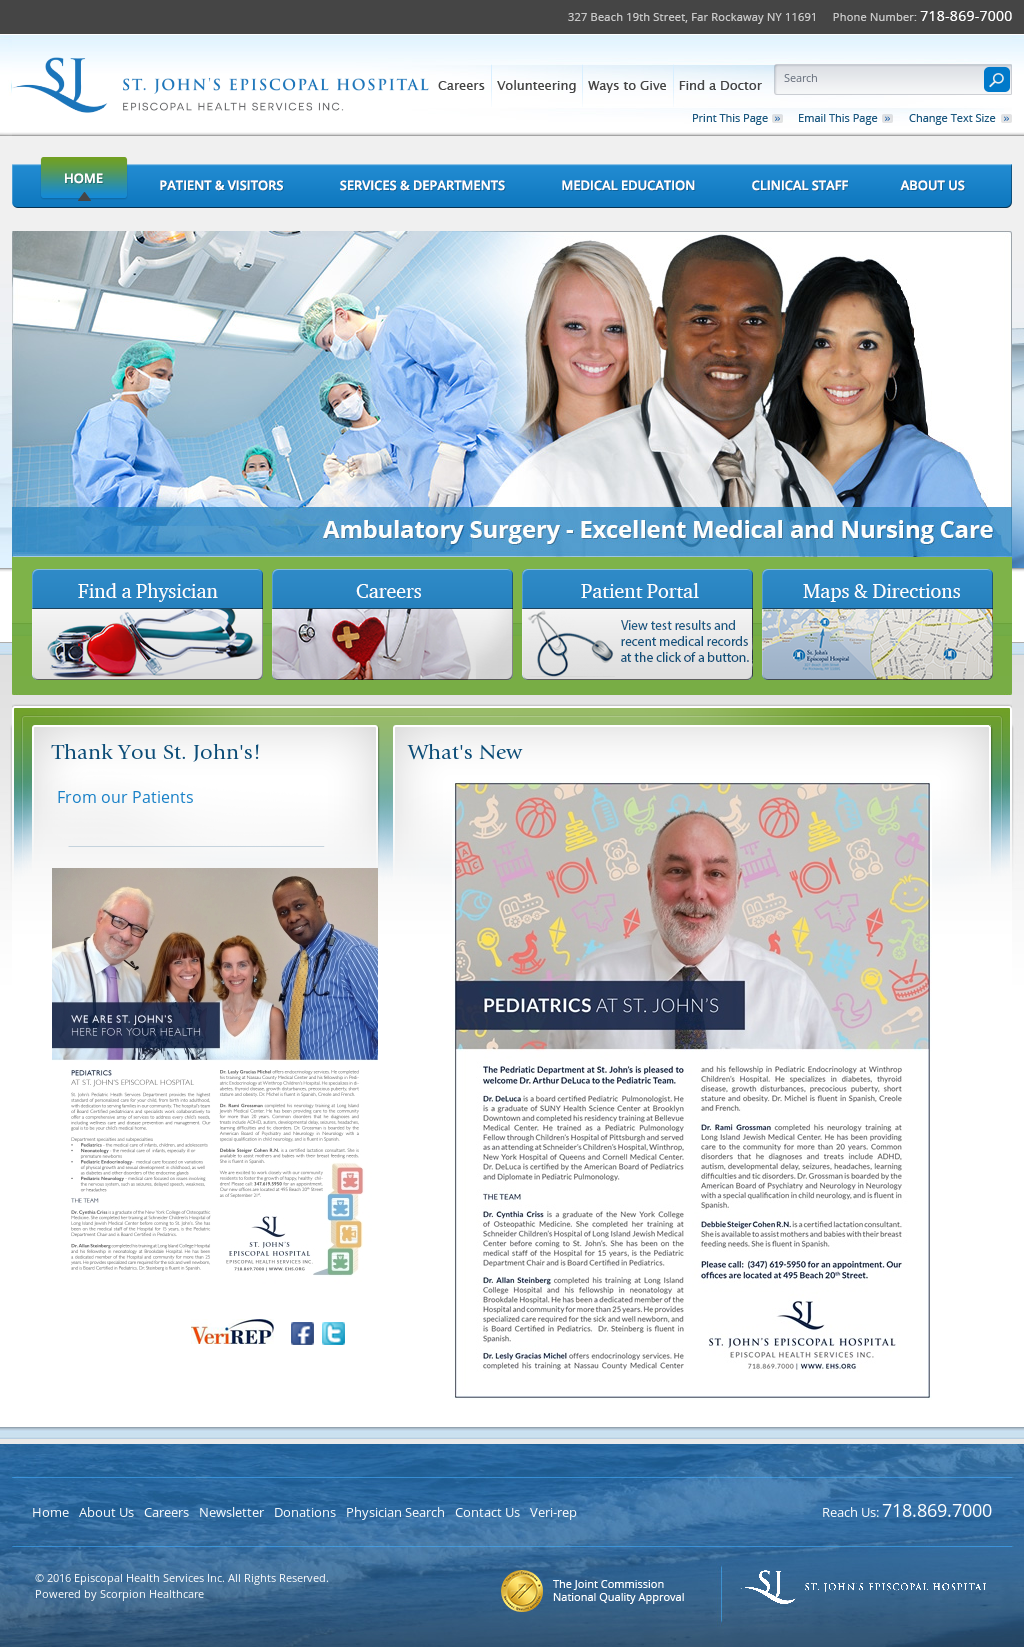 Episcopal Health Services Competitors, Revenue and Employees